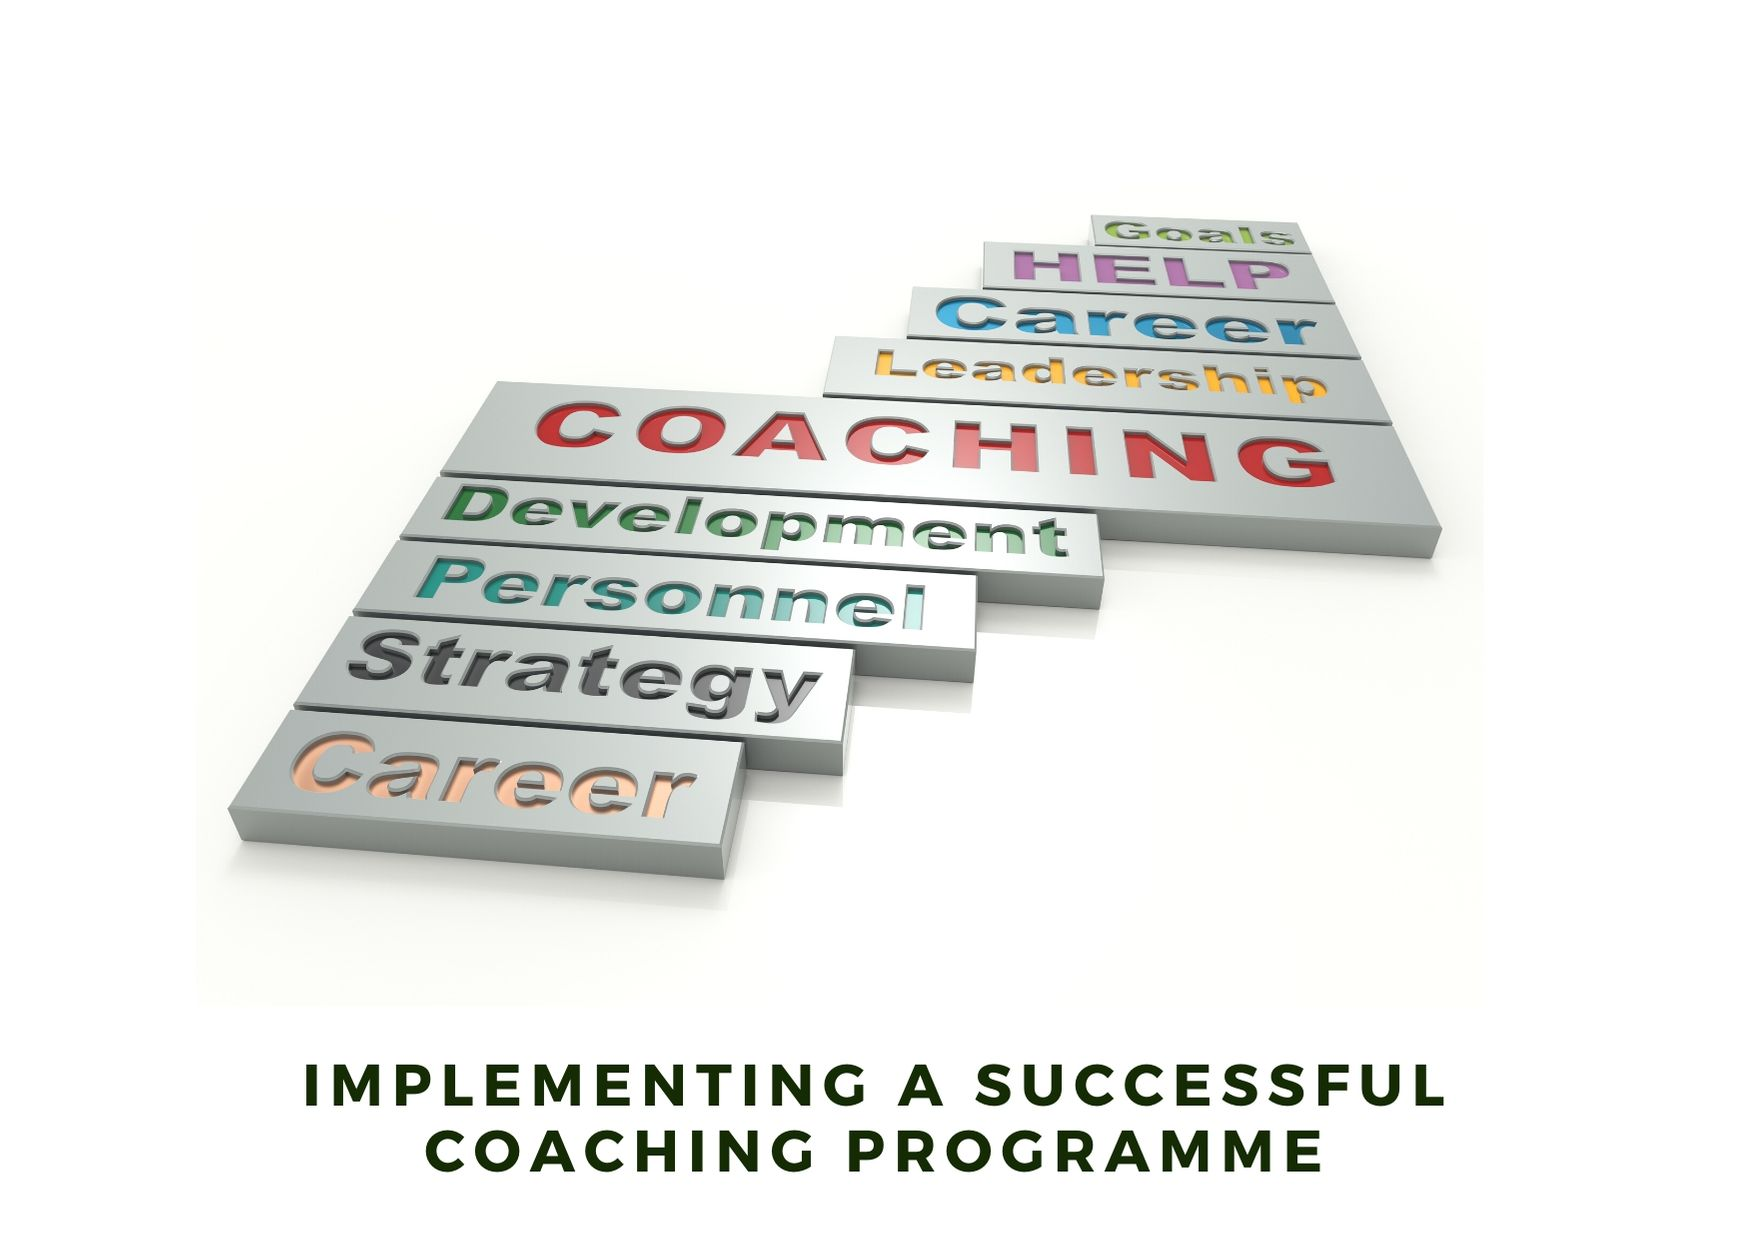 Implementing a Successful Coaching Programme